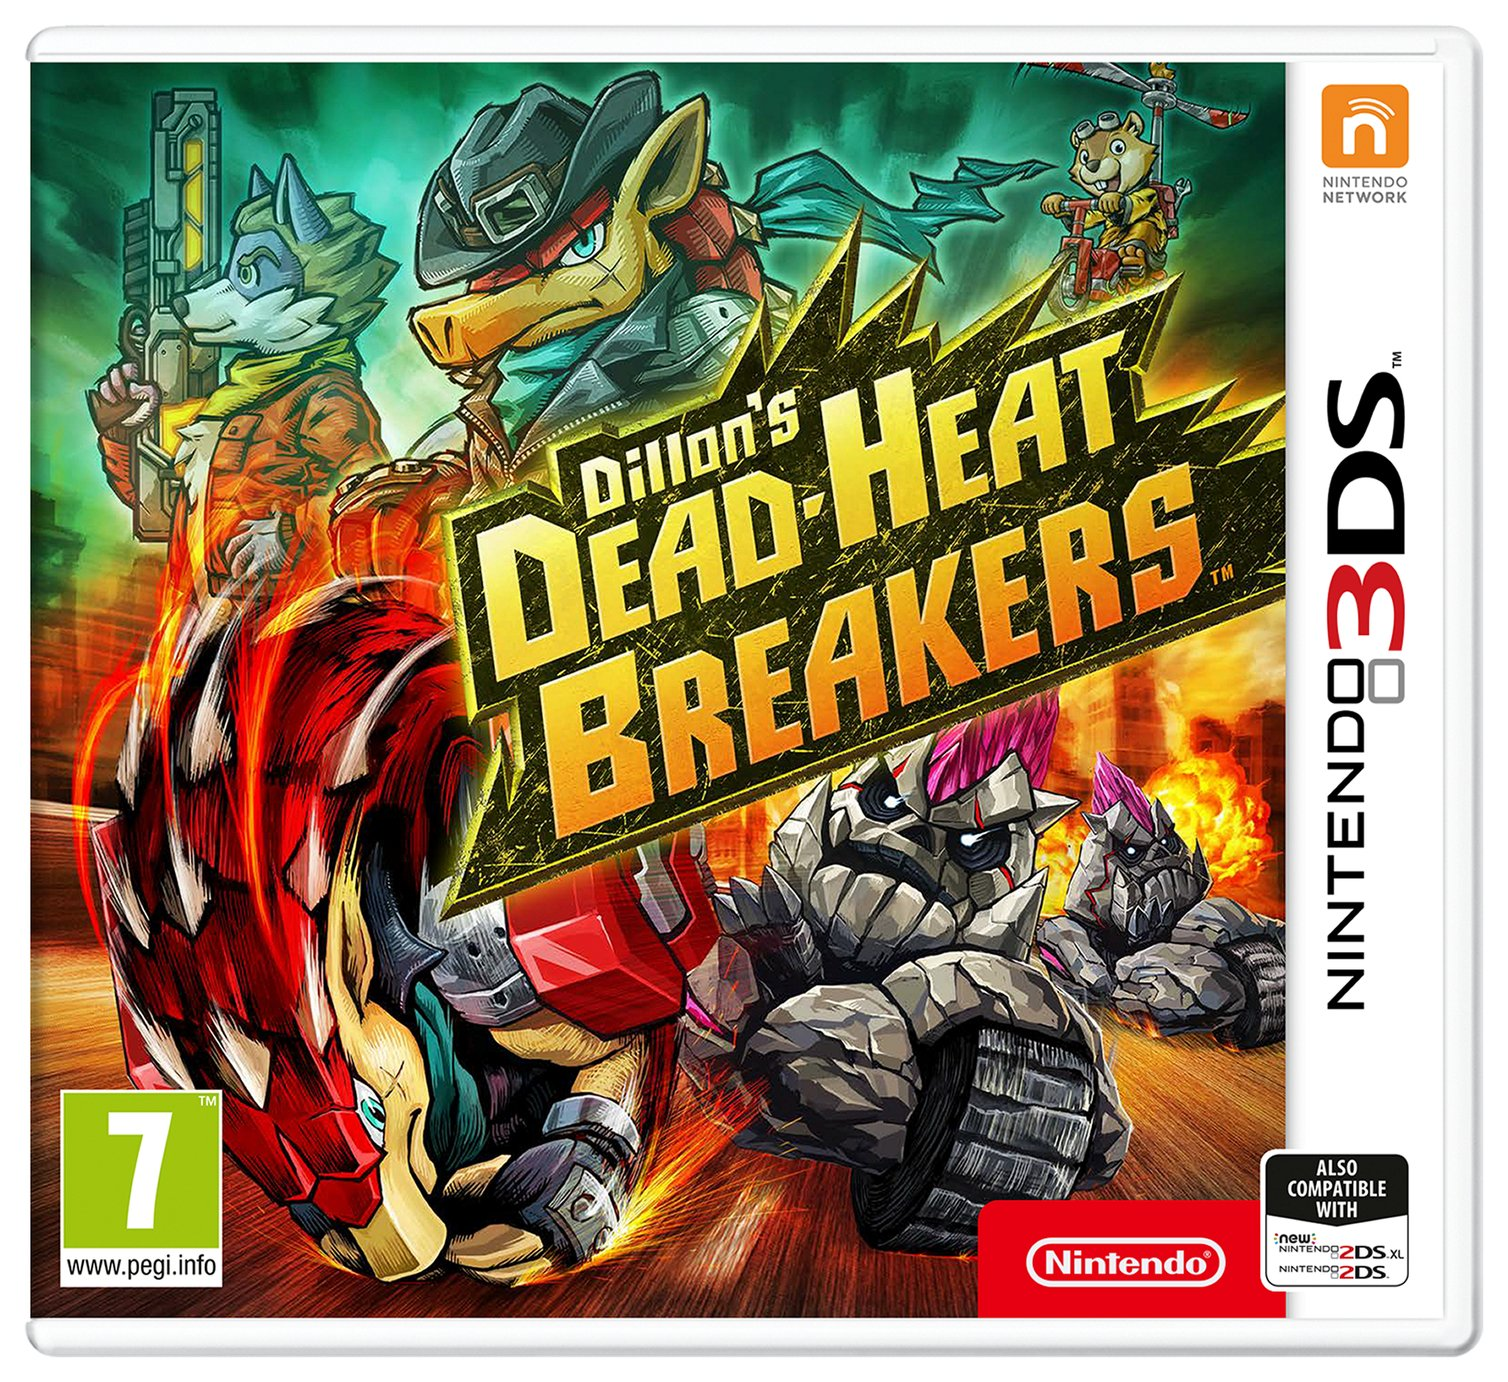 Dillion's Dead-Heat Breakers Nintendo 3DS Game